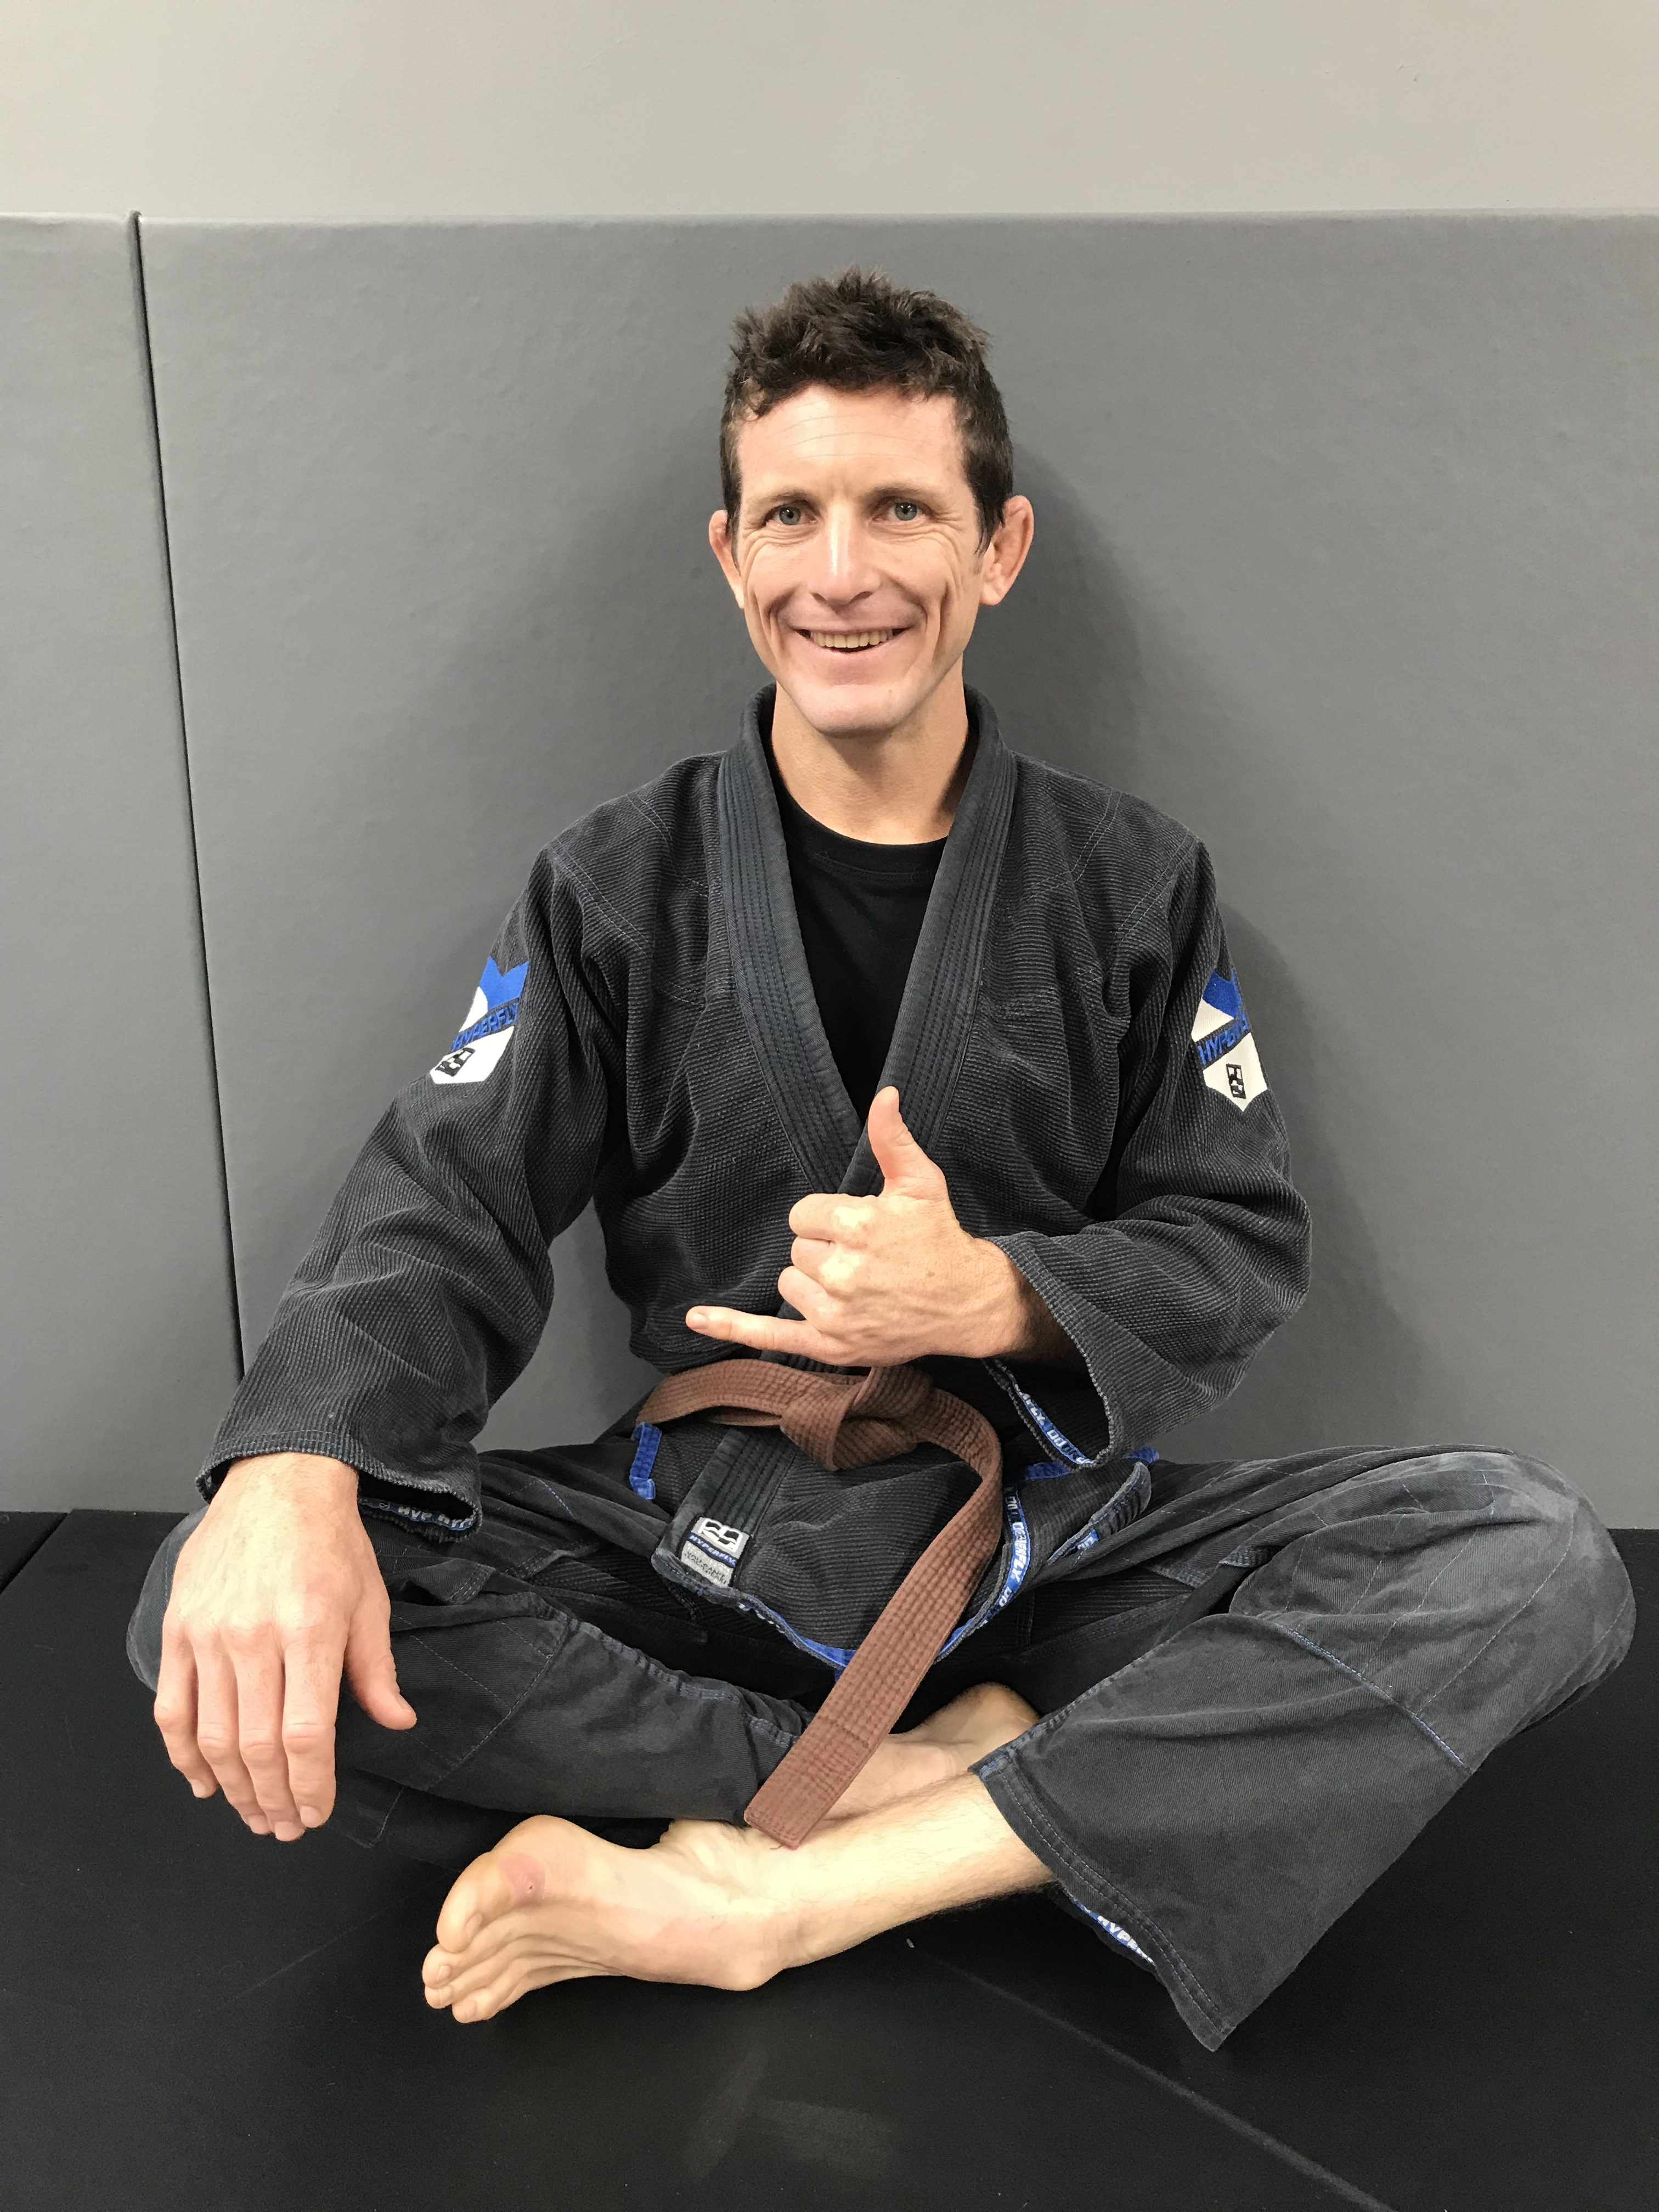 Meet our Instructors - Infinity Martial Arts